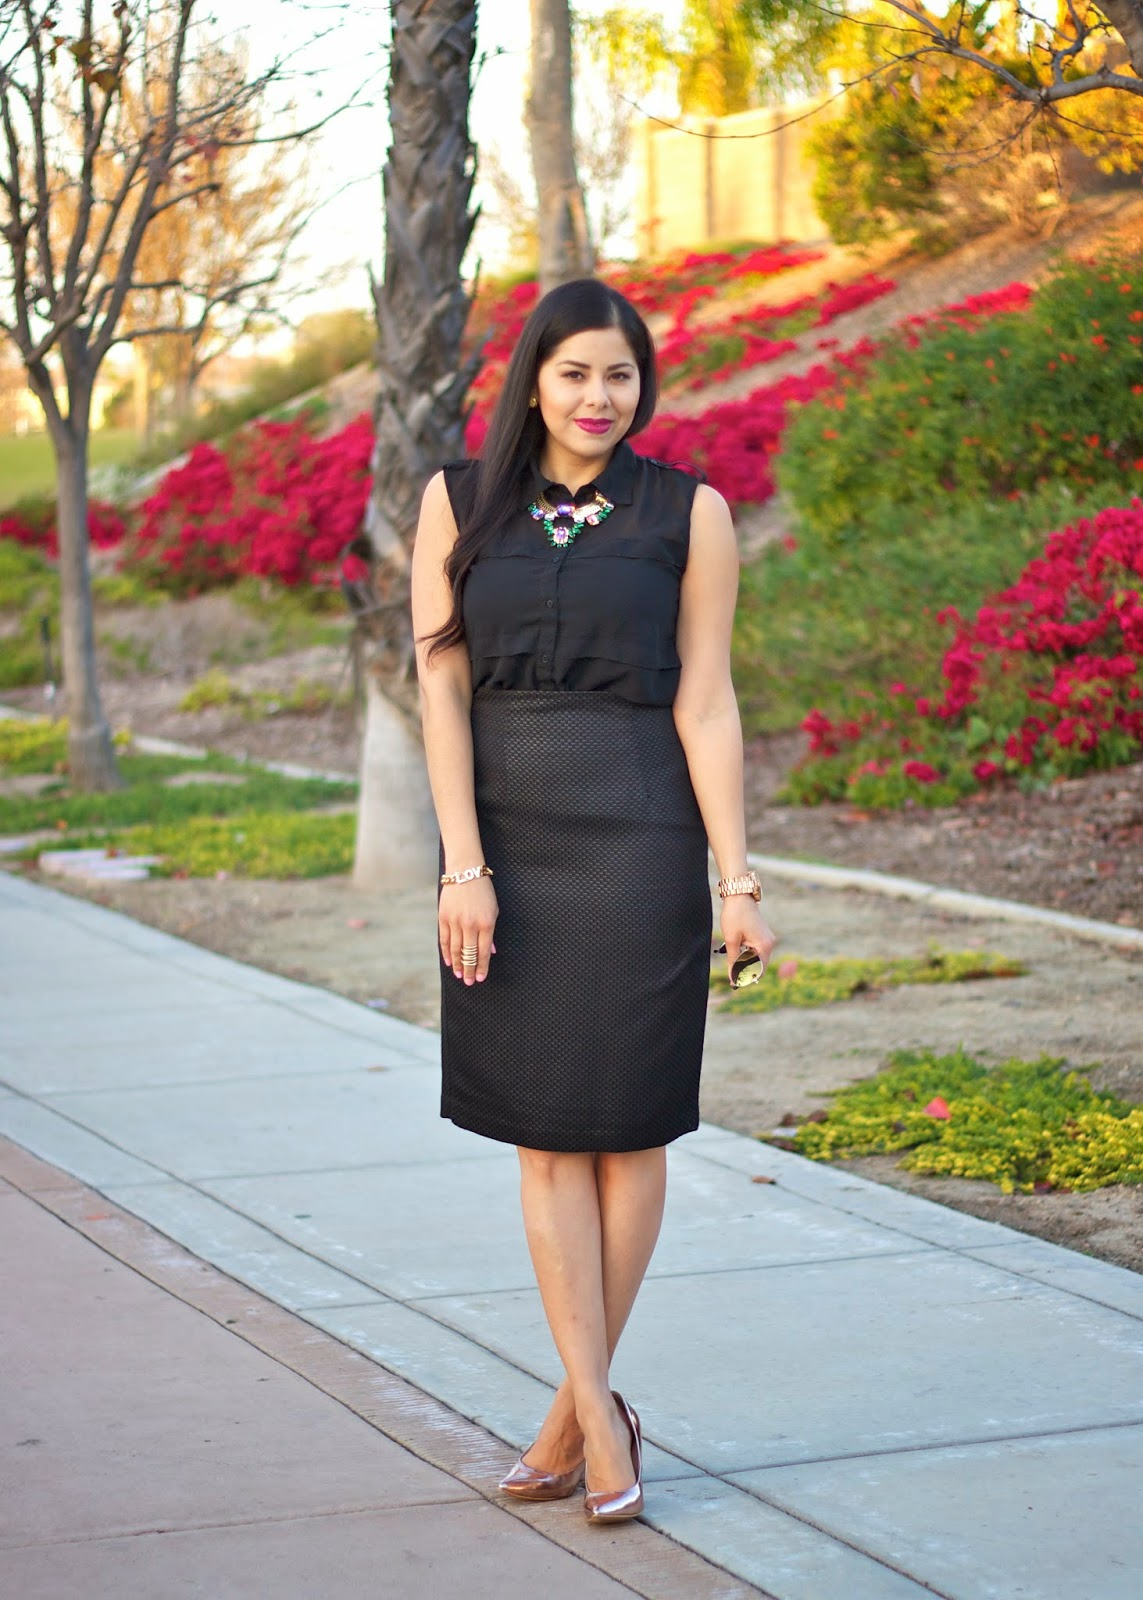 how to wear black in a glam way, glam black outfit, all black everything, lulus necklace, lulus blogger, lulus.com blogger, dark lips on latinas, bareminerals dark lip, bareminerals stand out, bareminerals moxie lipstick